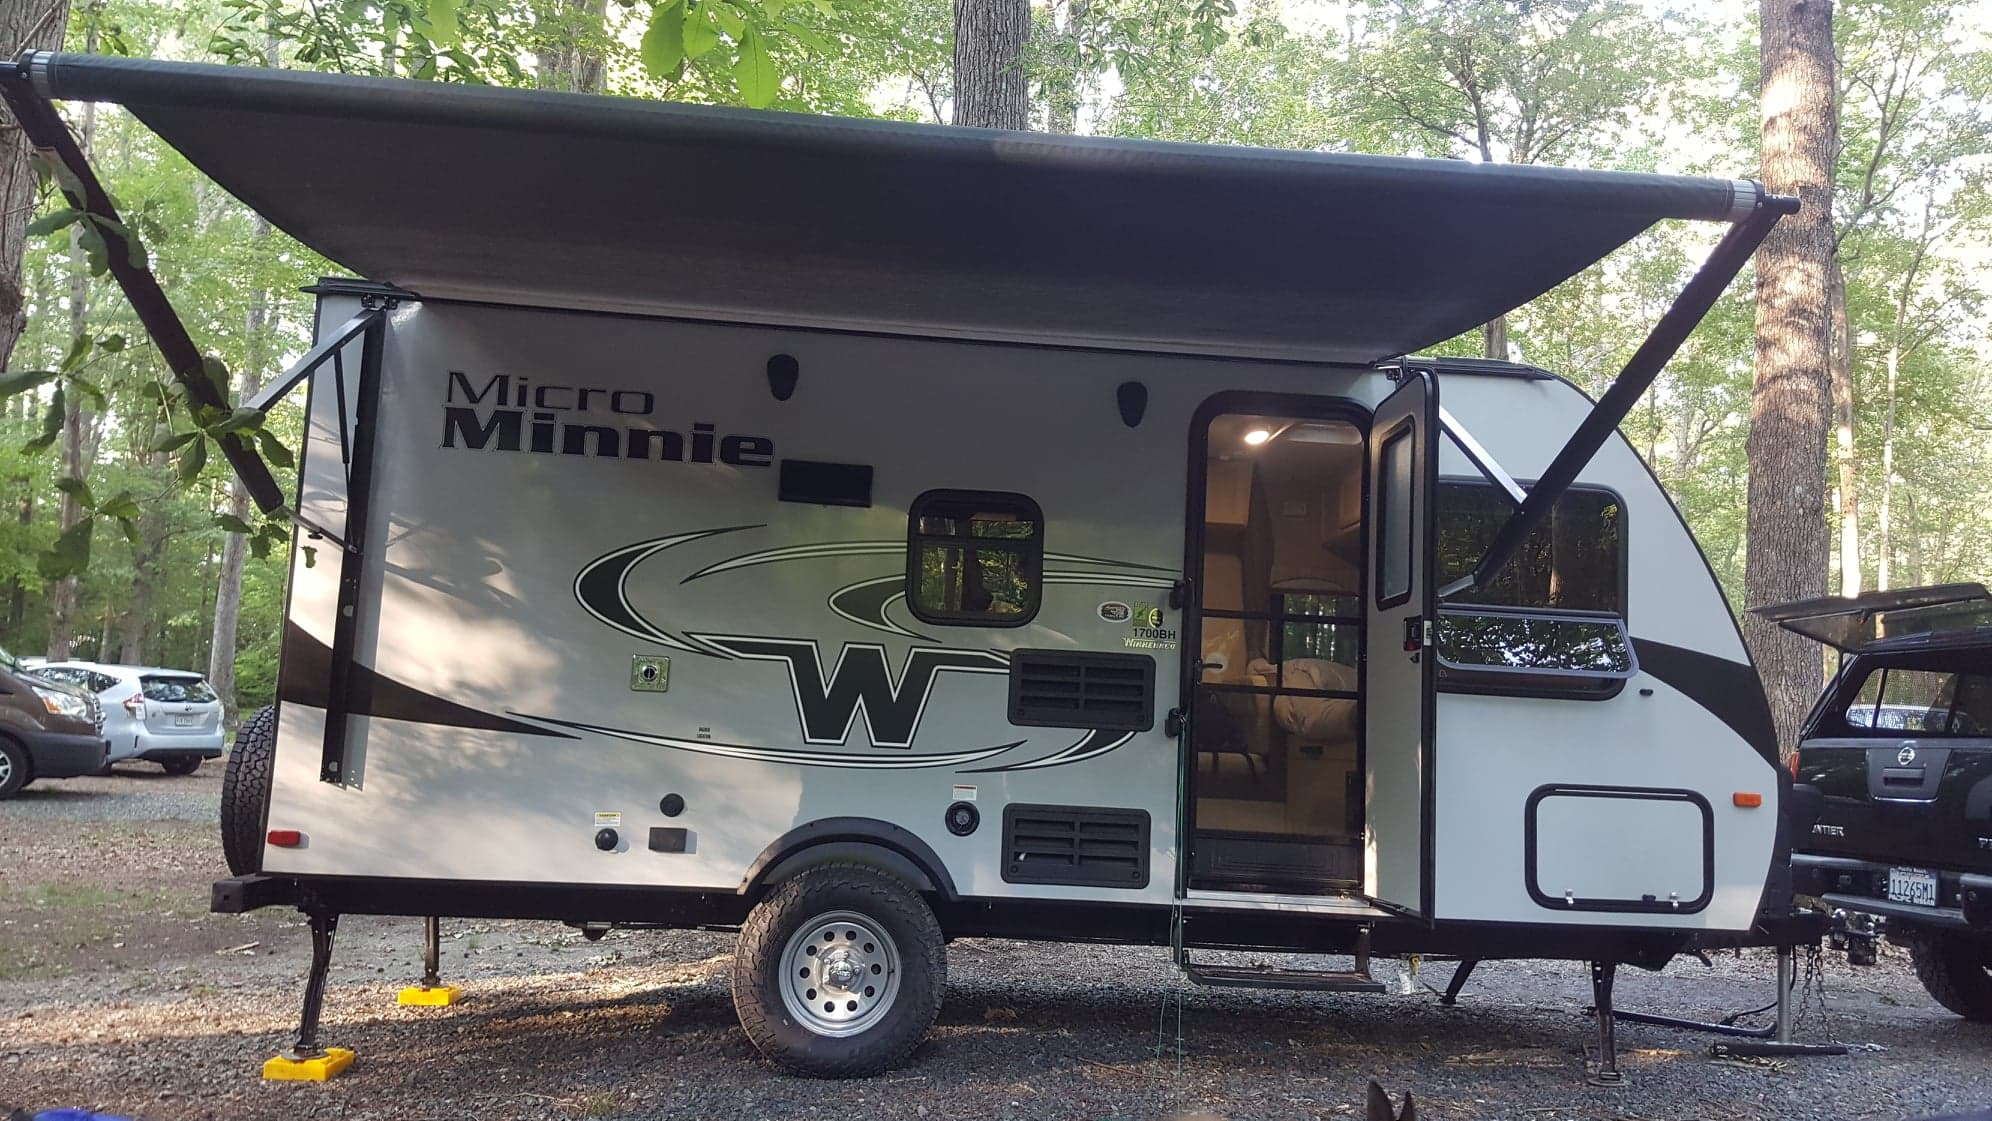 Weather was perfect for a relaxing camping trip.. Winnebago Micro Minnie 2018